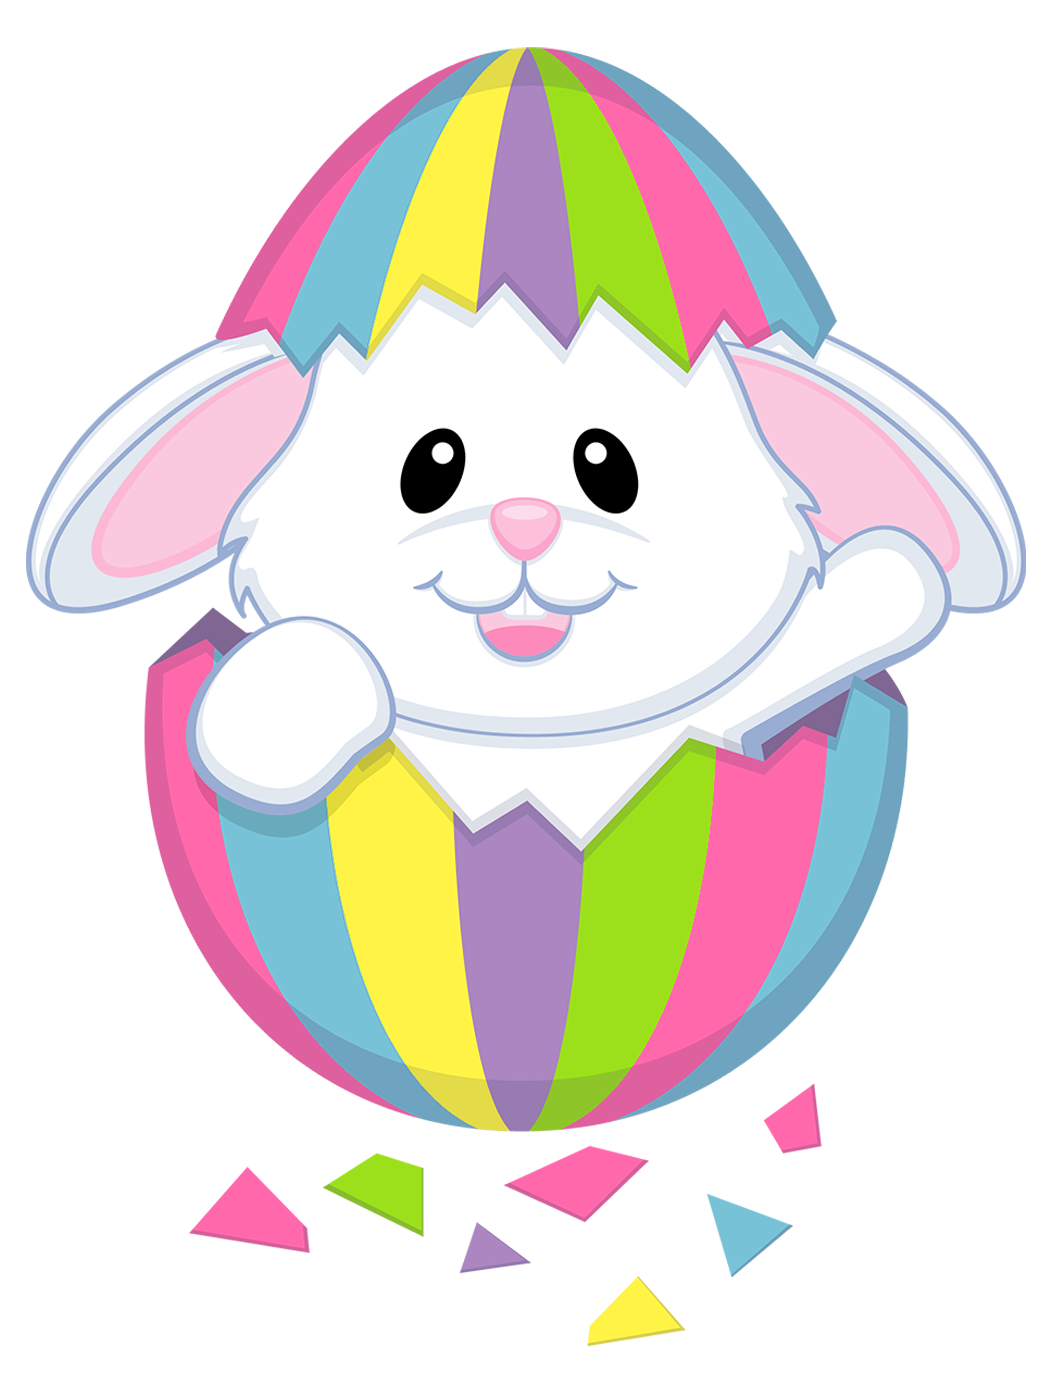 Easter egg and bunny clipart jpg freeuse Easter Bunny - ClipArt Best | Easter eggs | Easter bunny images ... jpg freeuse